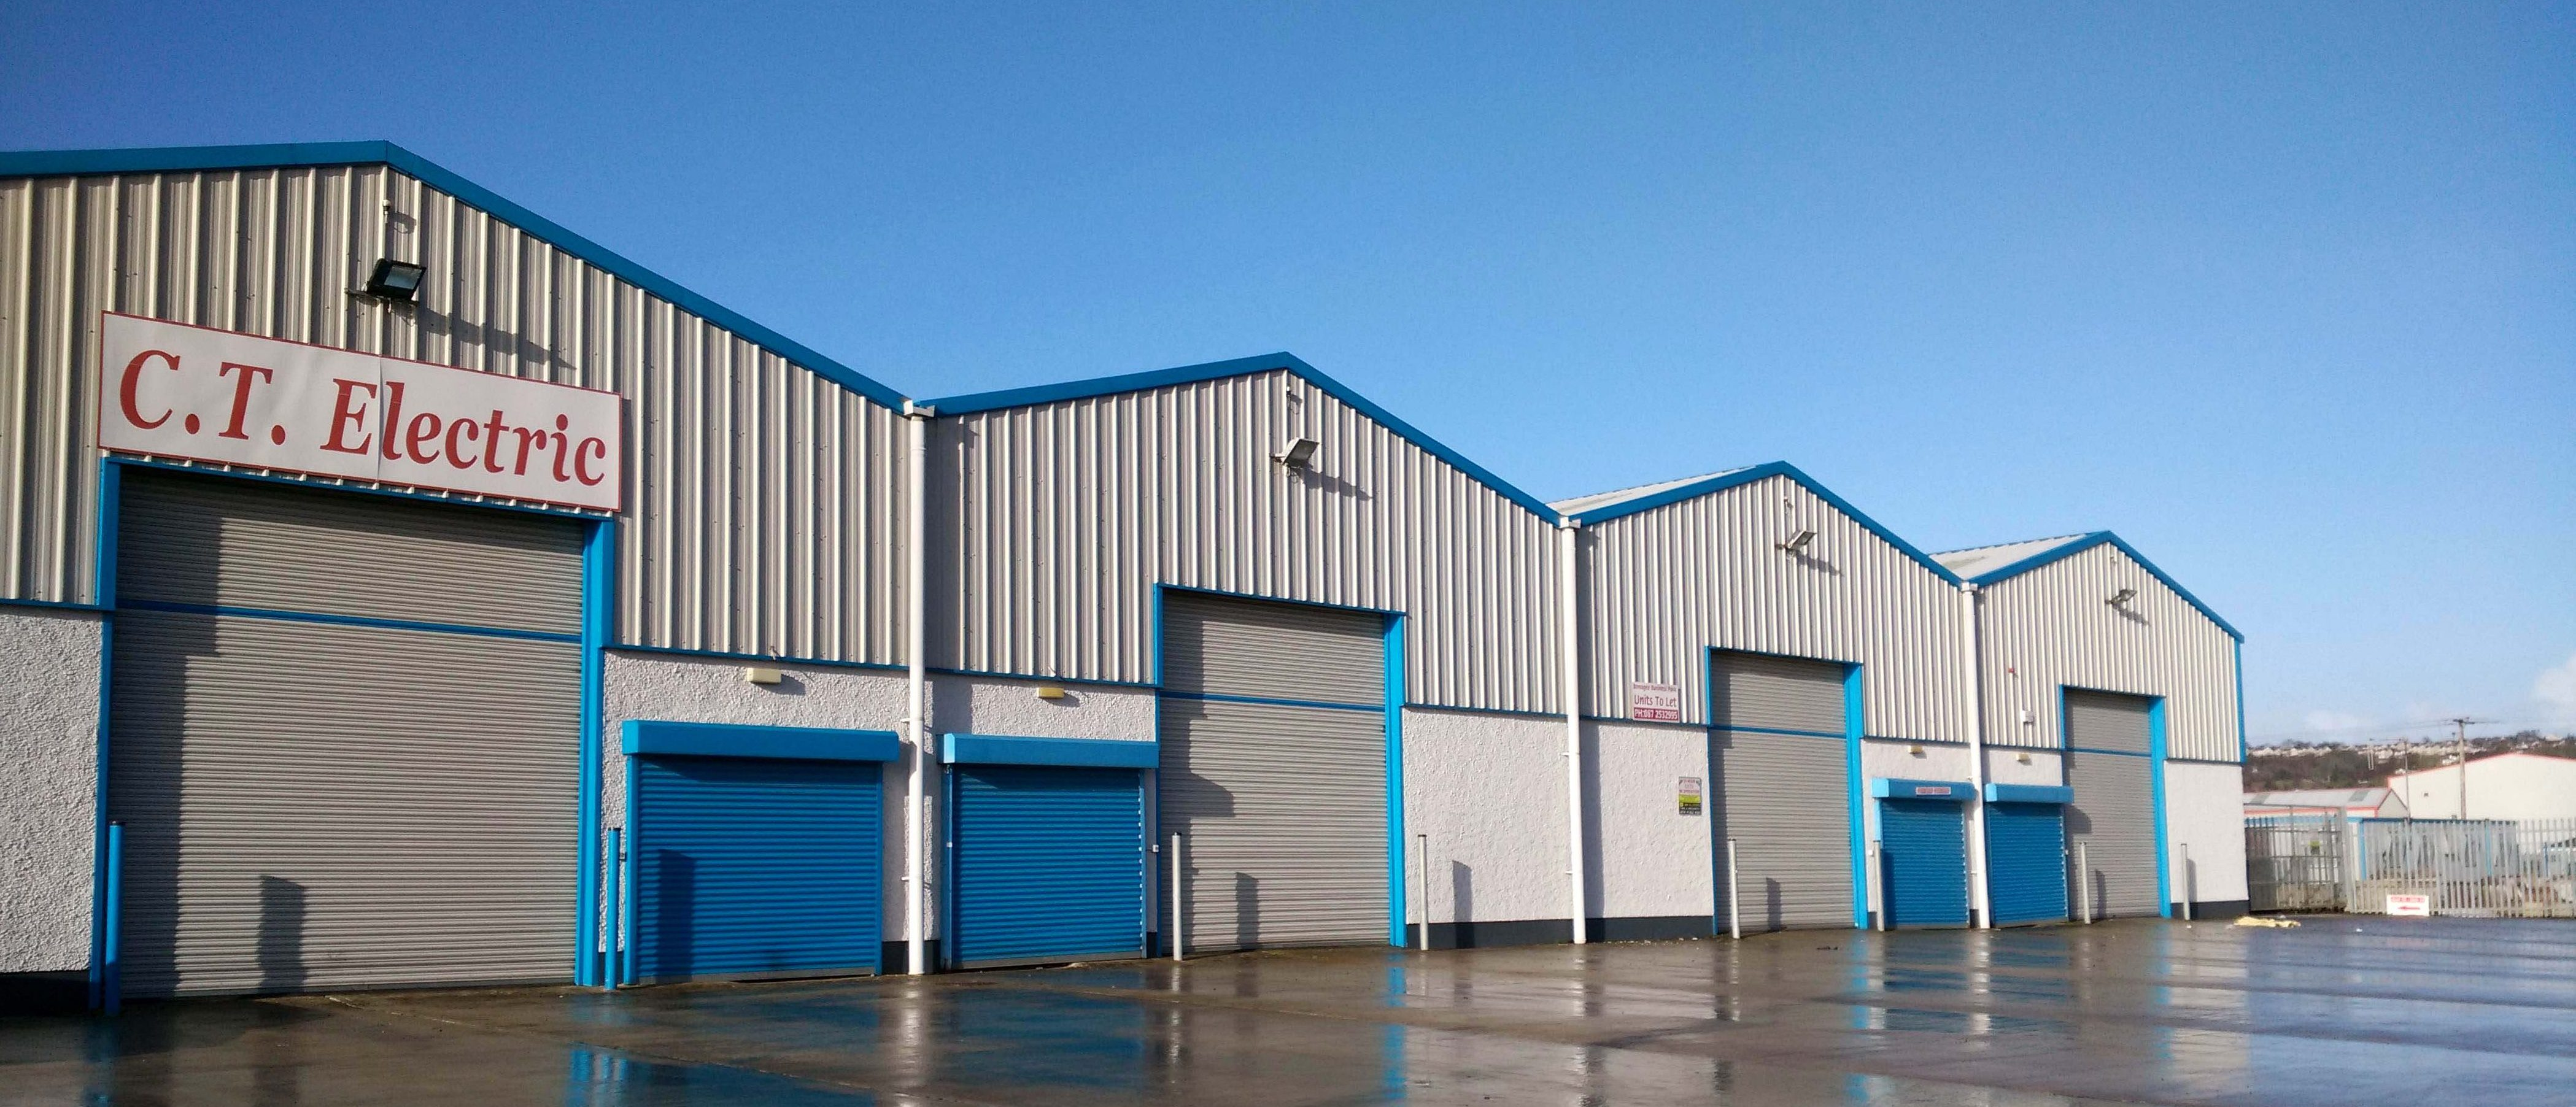 Unit 2, Bonagee Business Park, Letterkenny, Co. Donegal